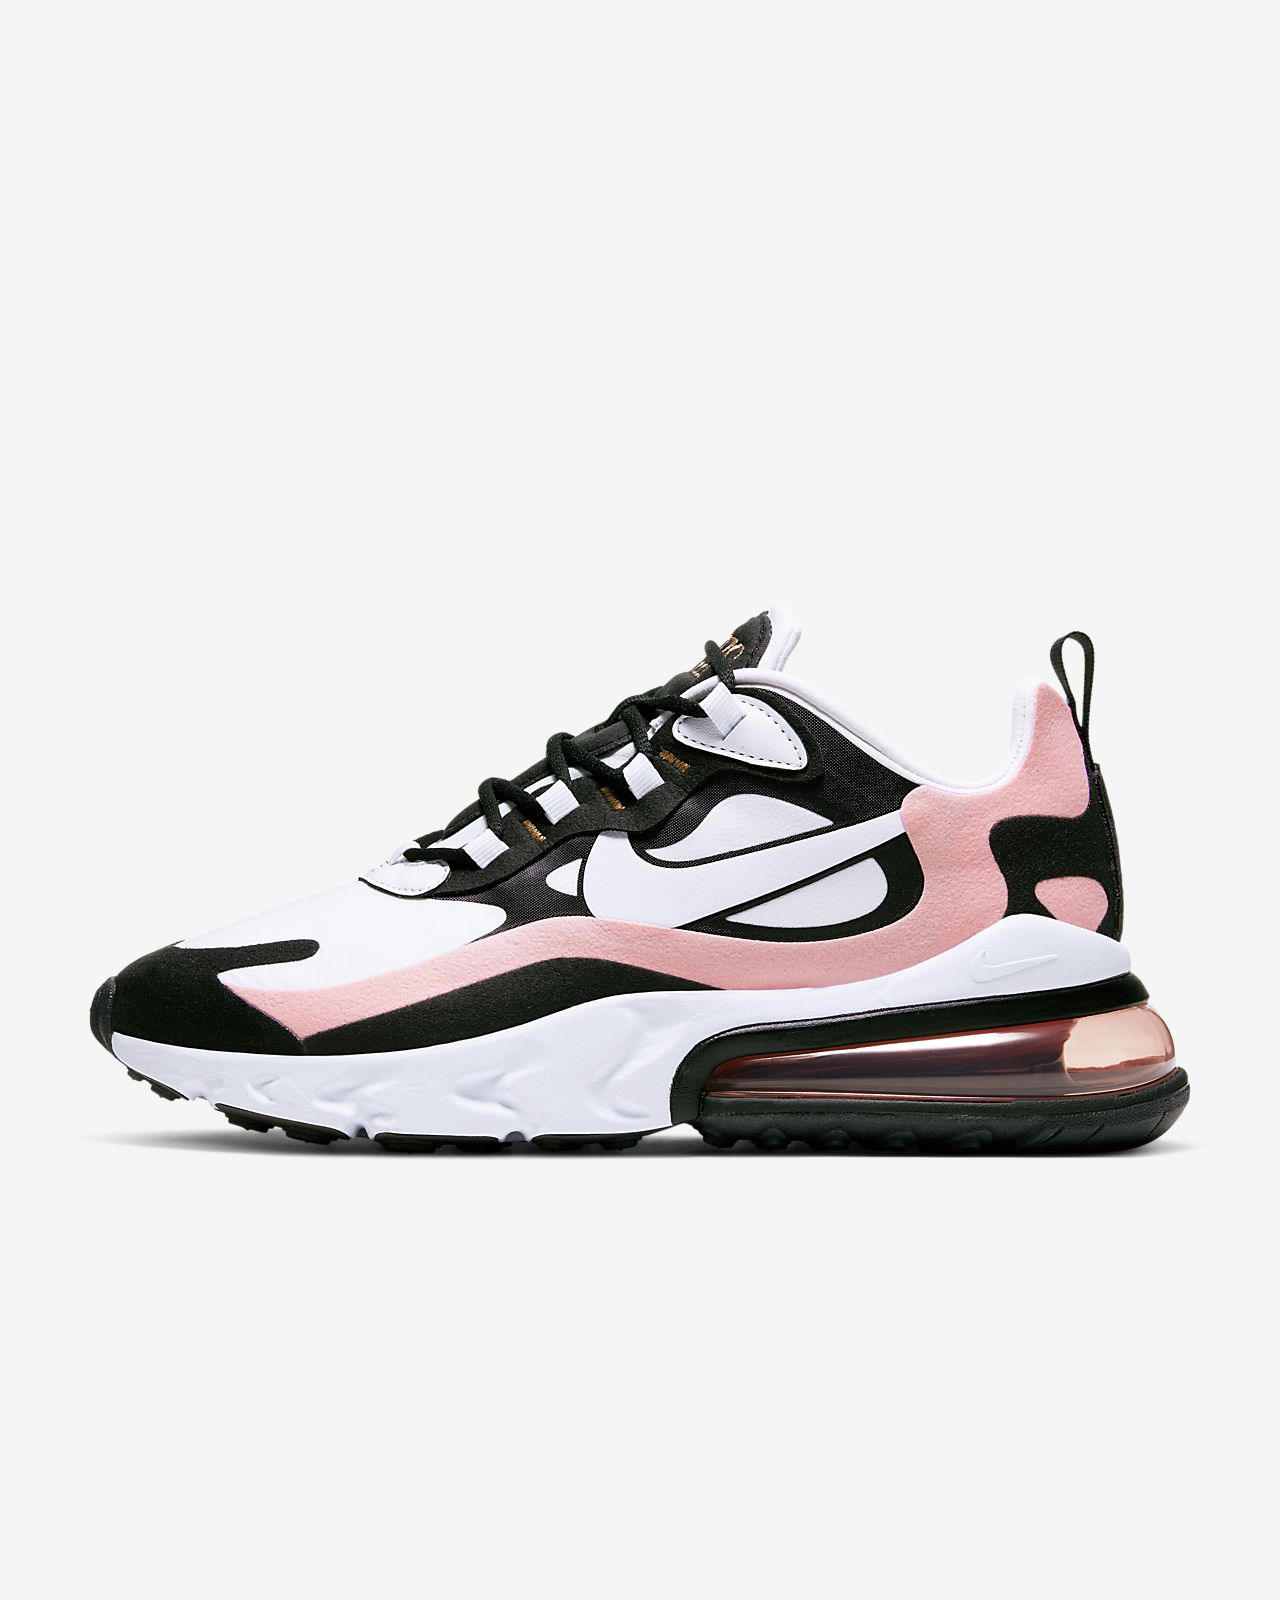 Nike Air Max 97 Off White Dame Sko Sort Hvit Norsk Air Max